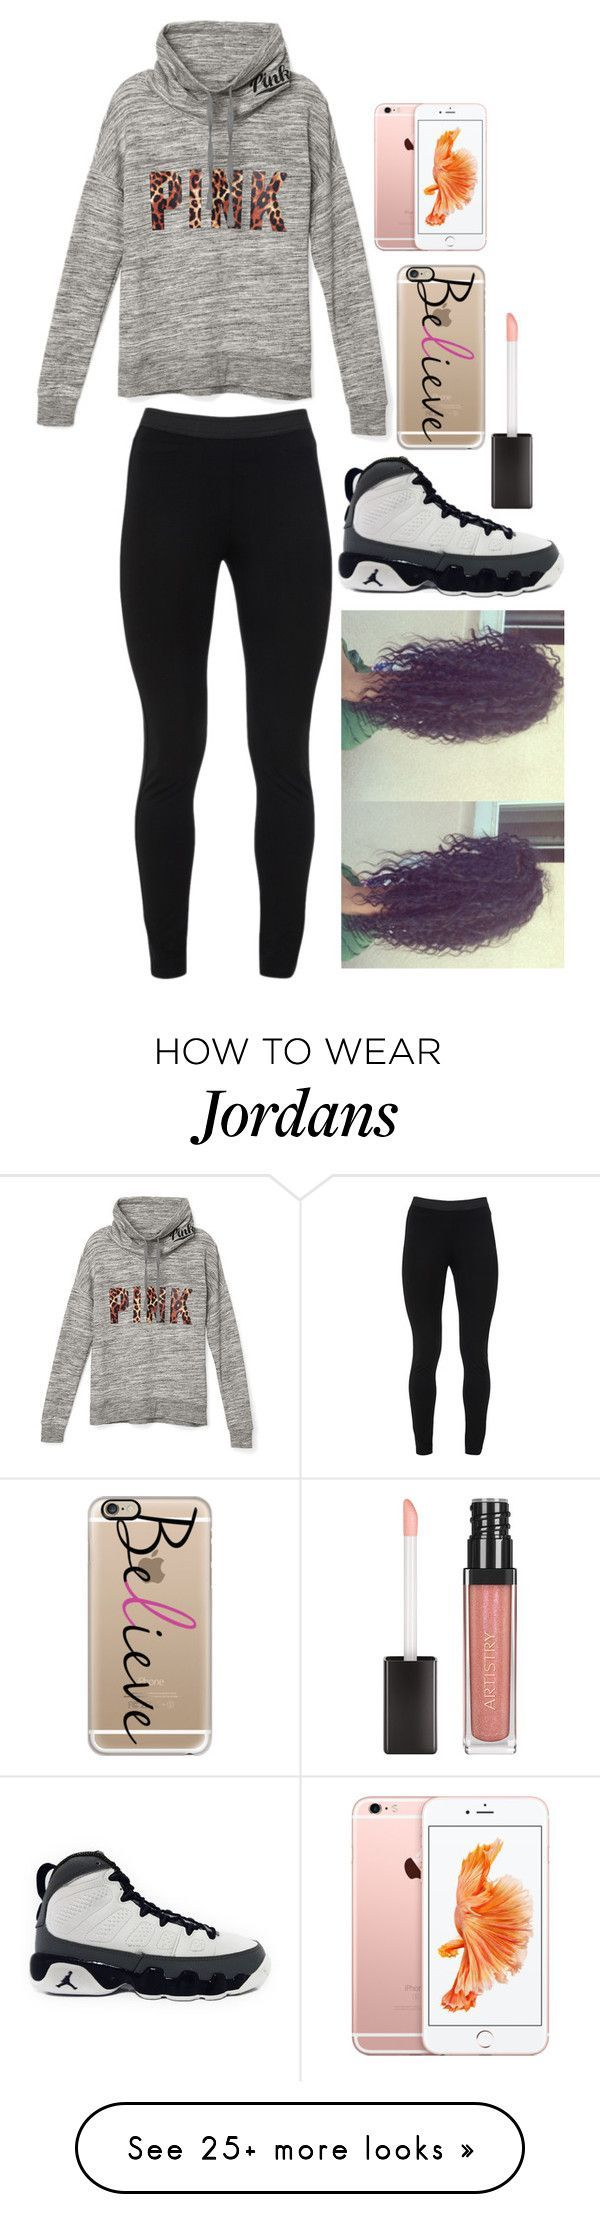 """""""Love"""" by mina-smith1 on Polyvore featuring Victoria's Secret PINK, Peace of Cloth, Retrò and Casetify"""